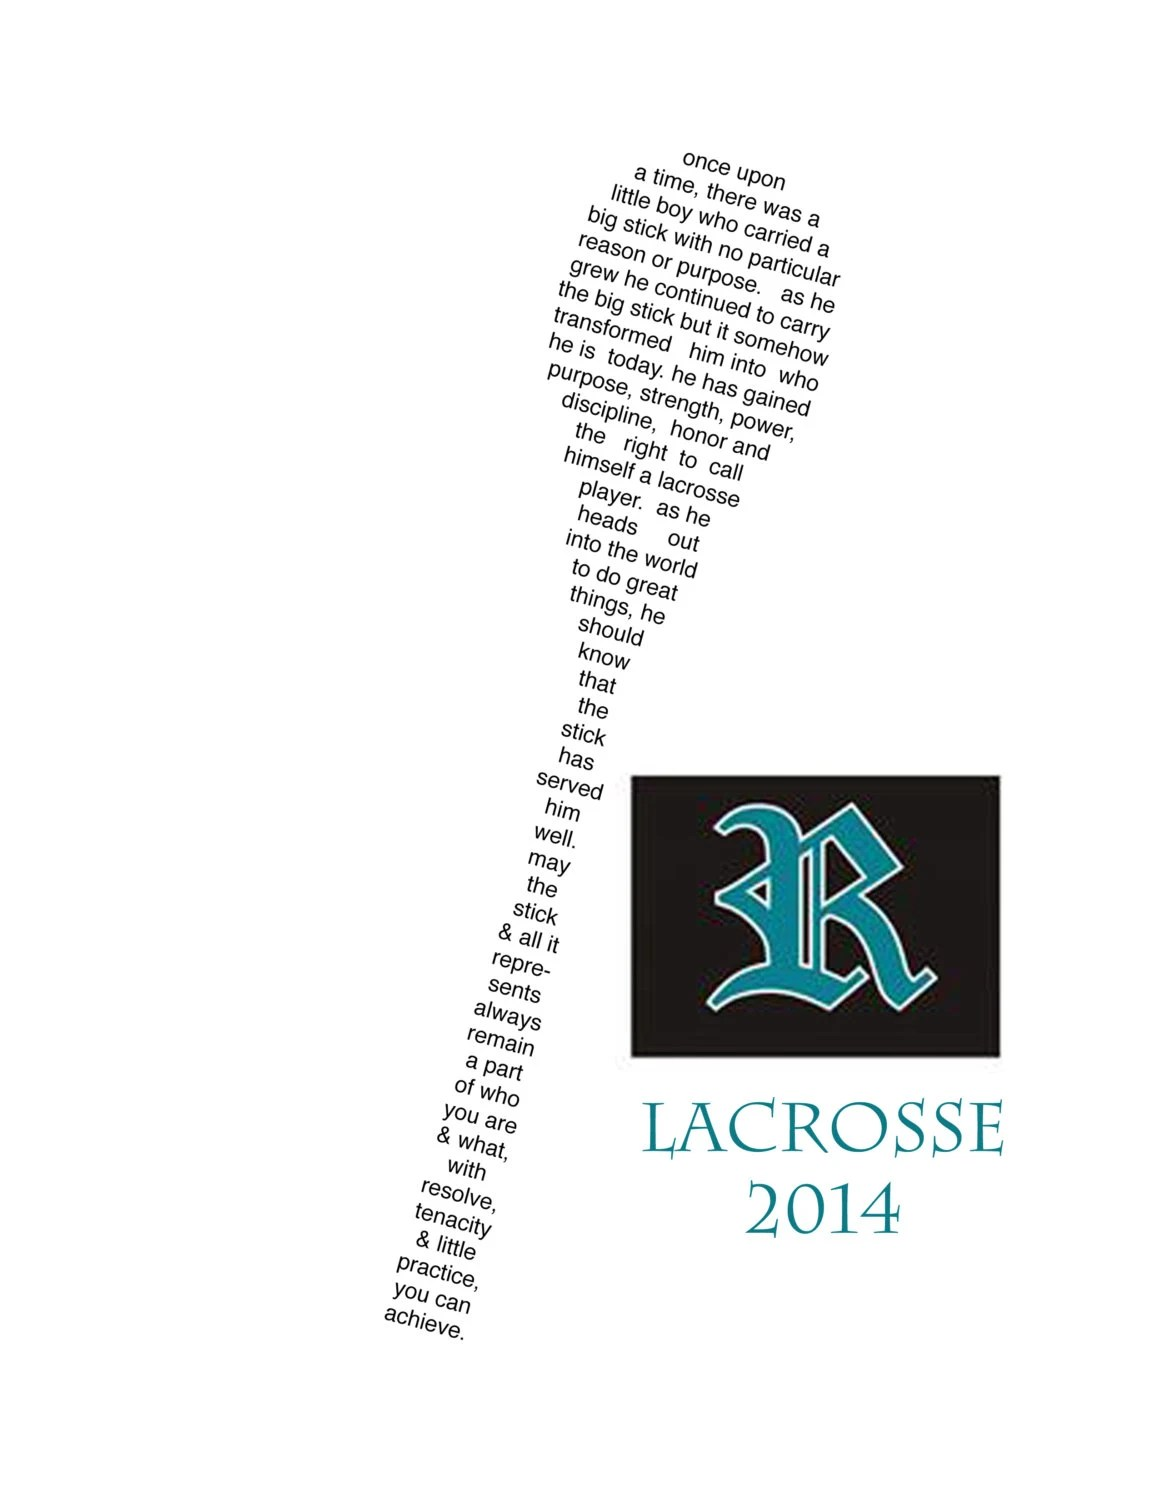 CUSTOM LaCrosse Poem for Trish Way 6 and 2